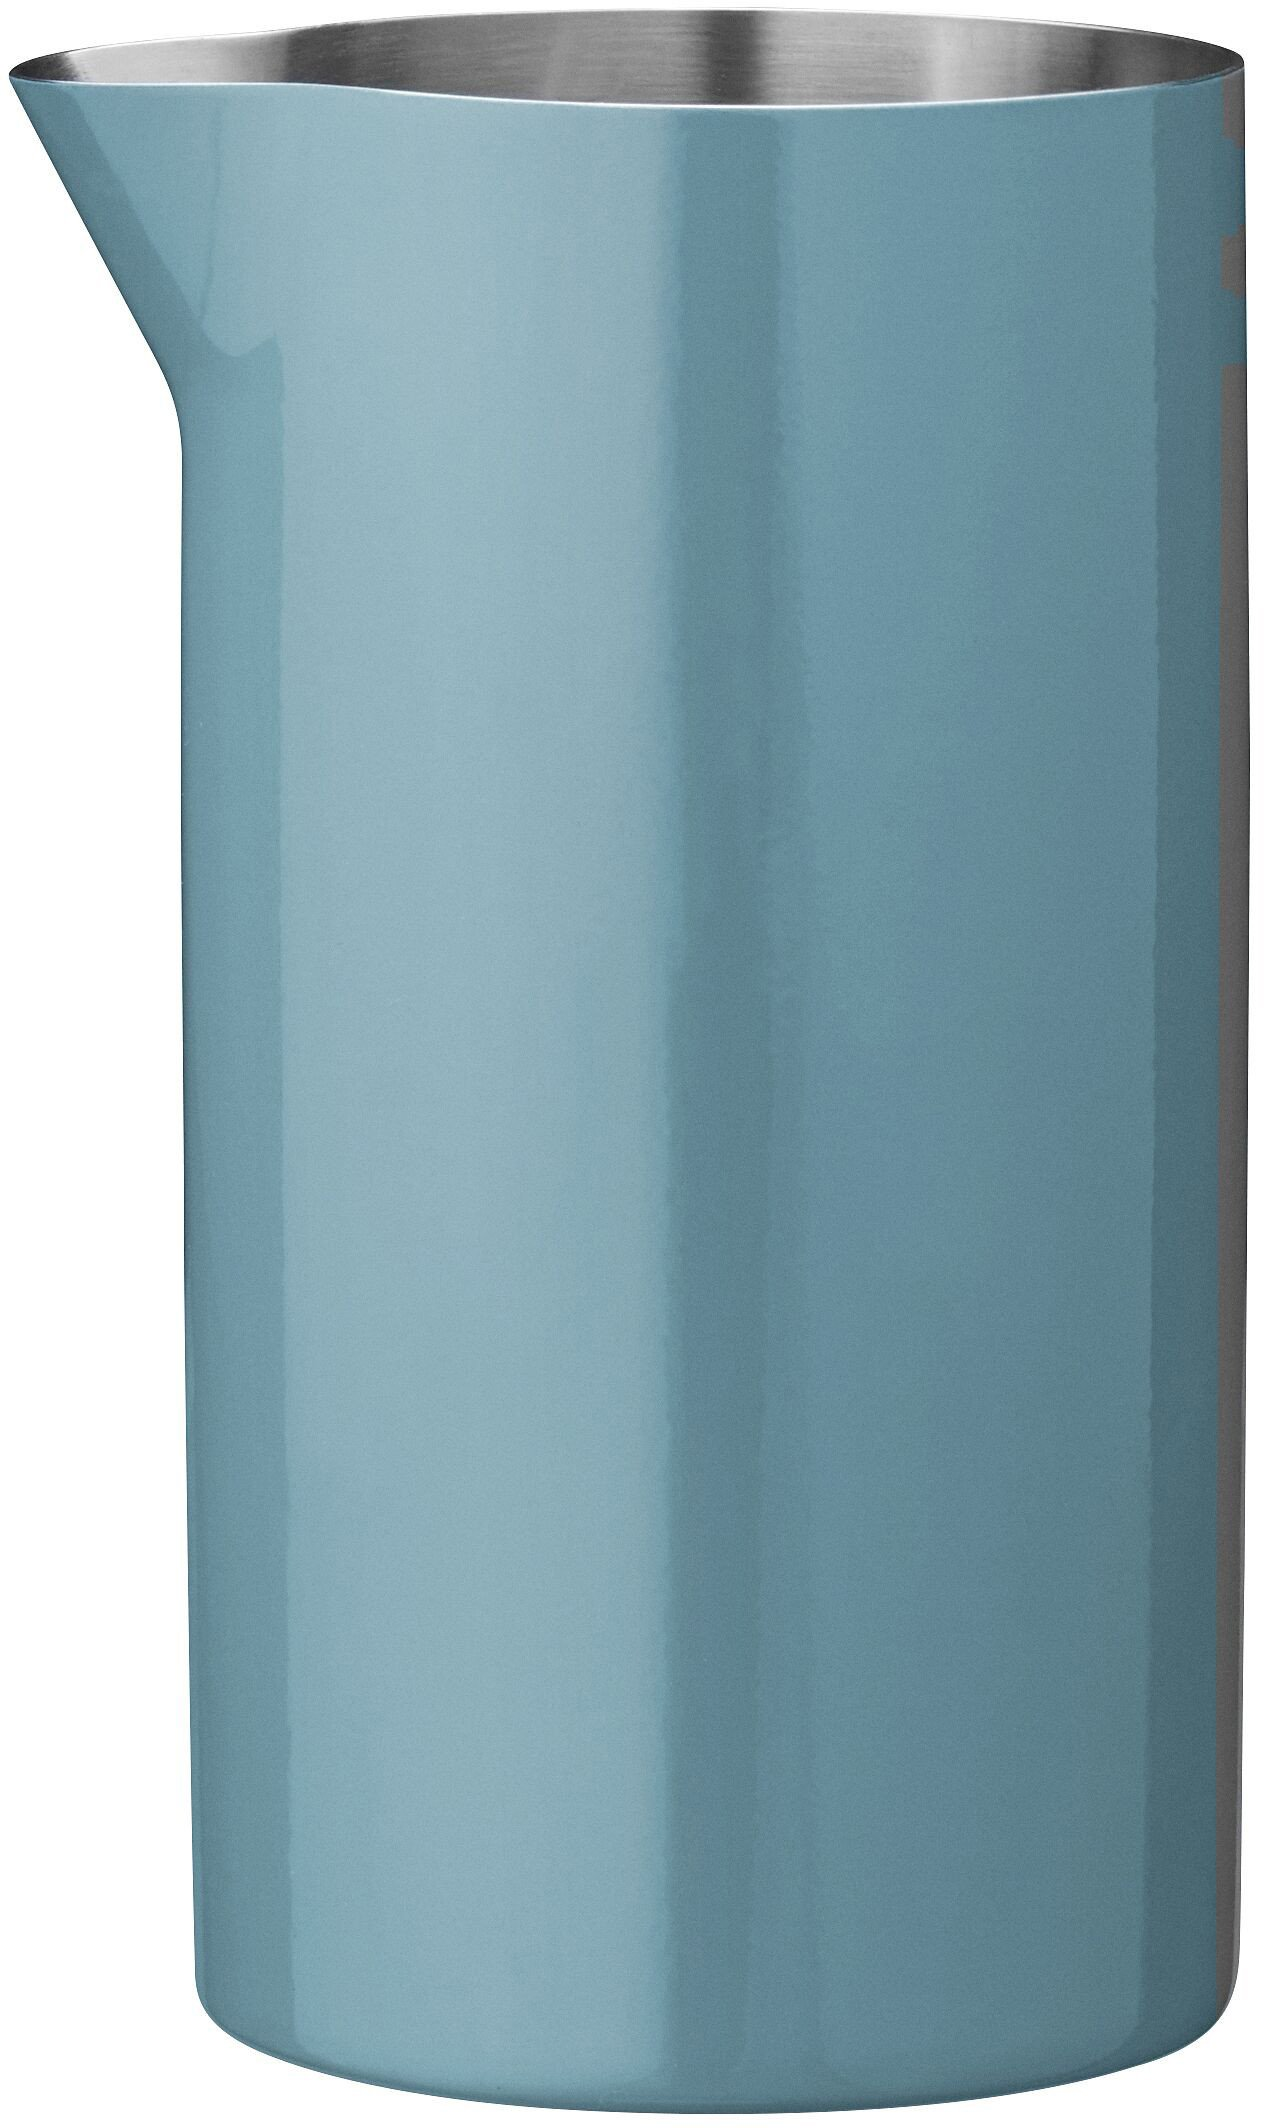 Cylinda-line 50th Anniversary Creamer Teal by A. Jacobsen for Stelton